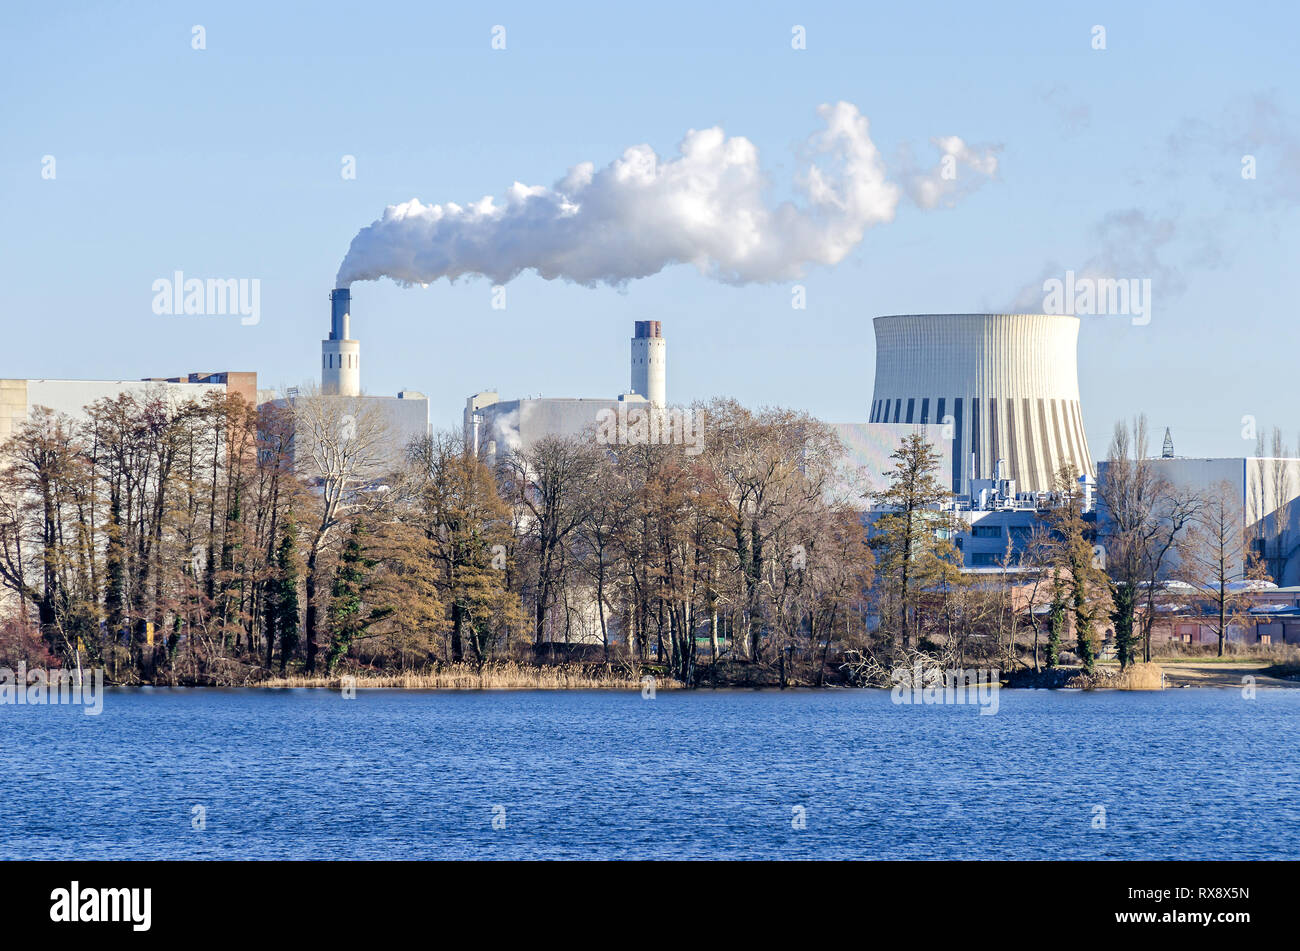 Berlin, Germany - February 22, 2019: Cooling tower and chimney stacks of the Reuter West environmentally compatible combined heat and power plant - Stock Image